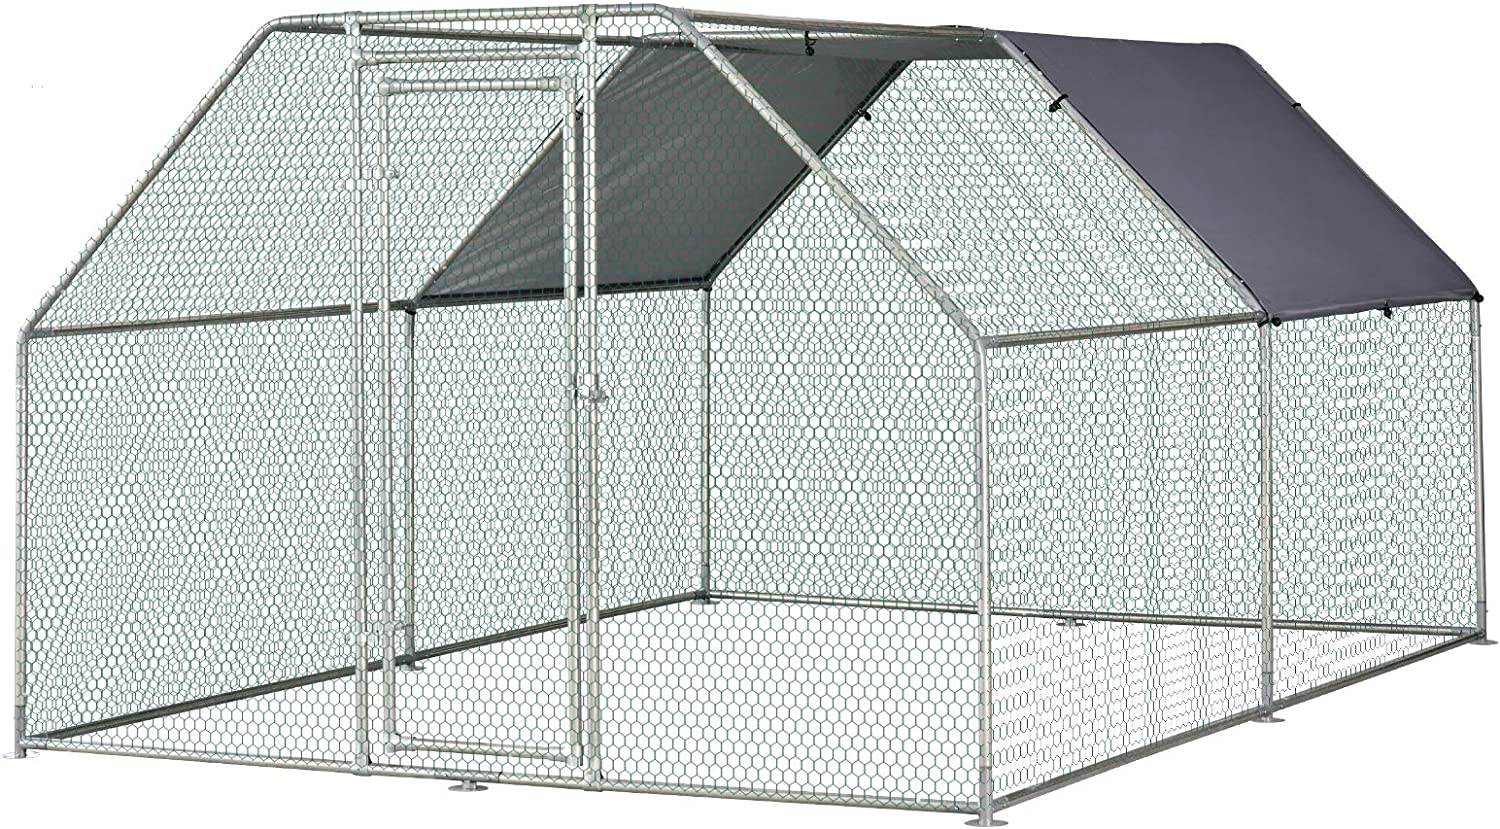 PawHut Galvanized Metal Chicken Coop Cage with Cover, Walk-in Pen Run